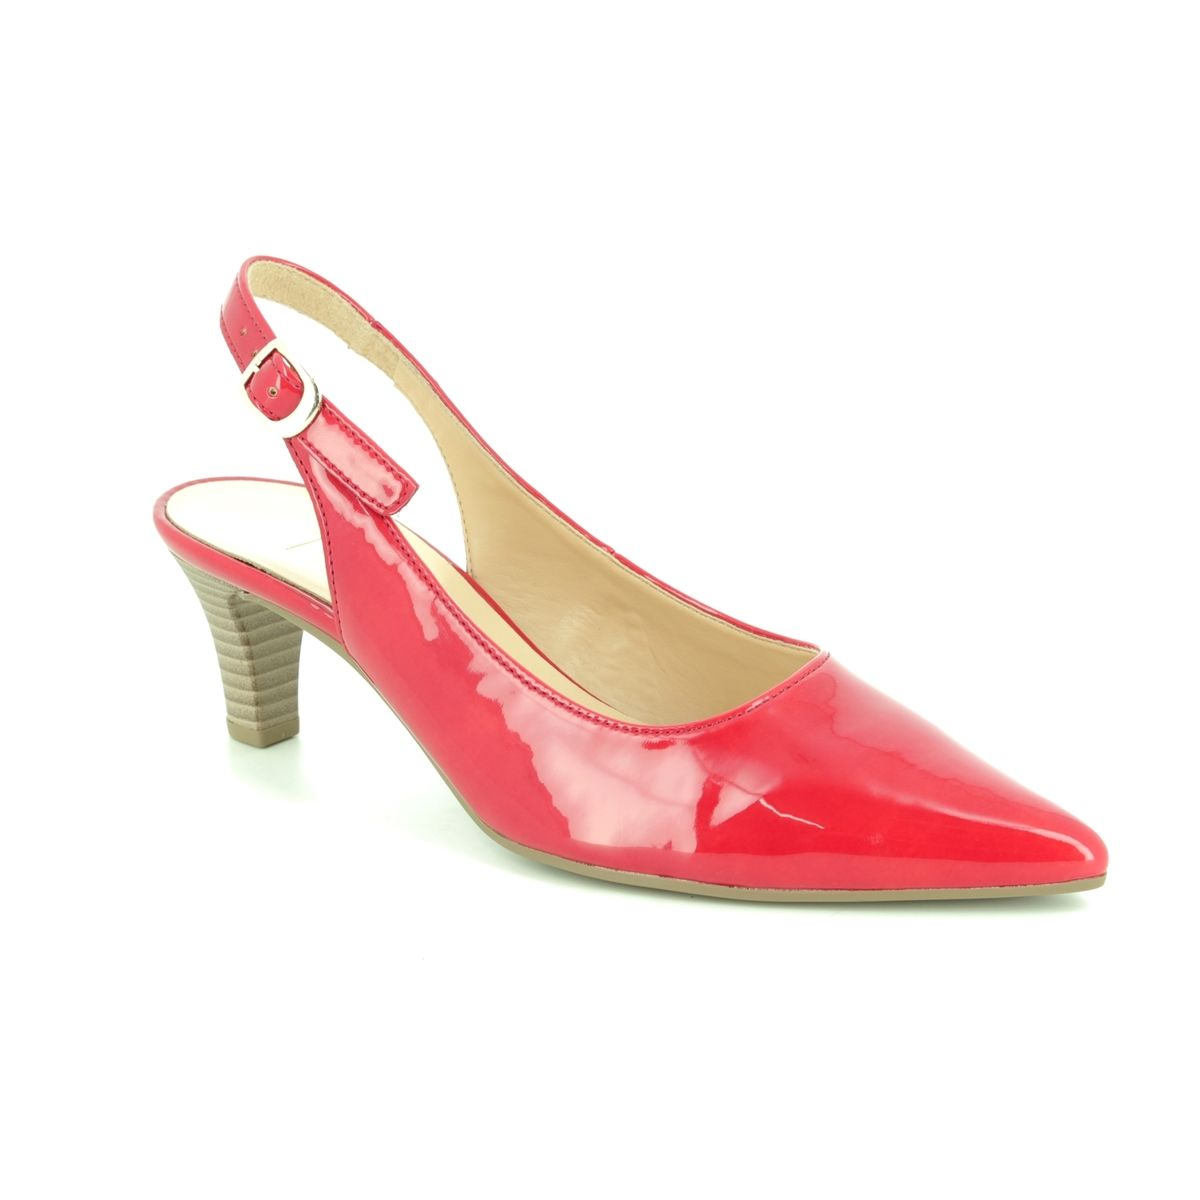 bdd9c7f02c4 Gabor Slingback Shoes - Red patent - 21.550.75 HUME 2